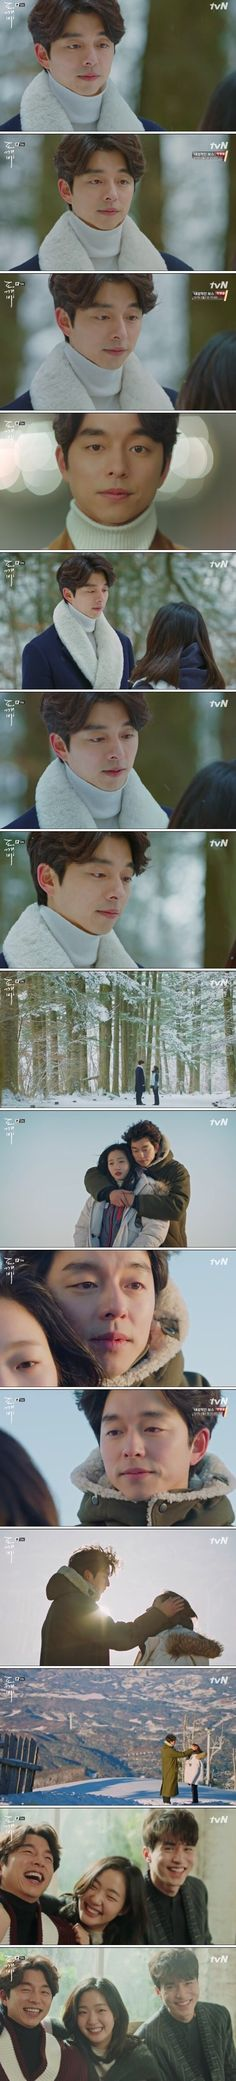 [Spoiler] Added episodes 9 and 10 captures for the #kdrama 'Goblin'